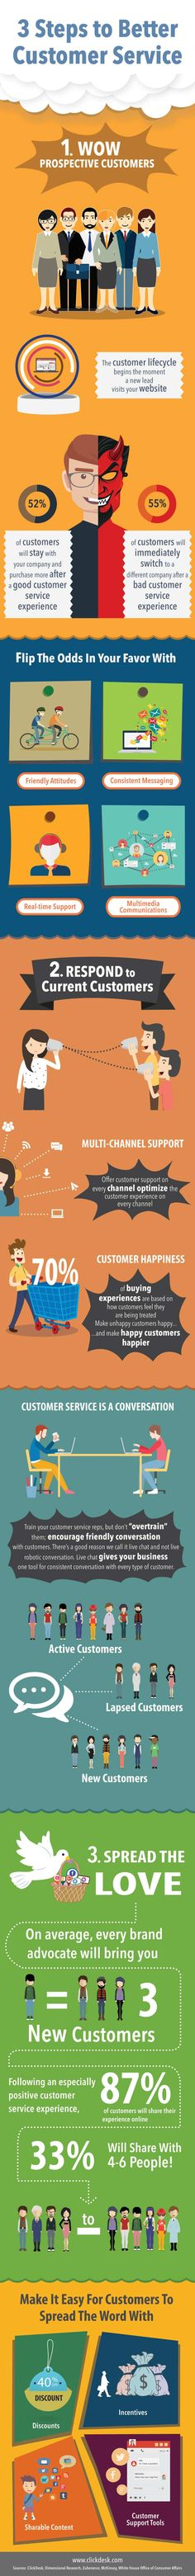 Customer service doesn't have to be complicated. New infographic from ClickDesk shows 3 Steps to Better Customer Service that any small business can use!